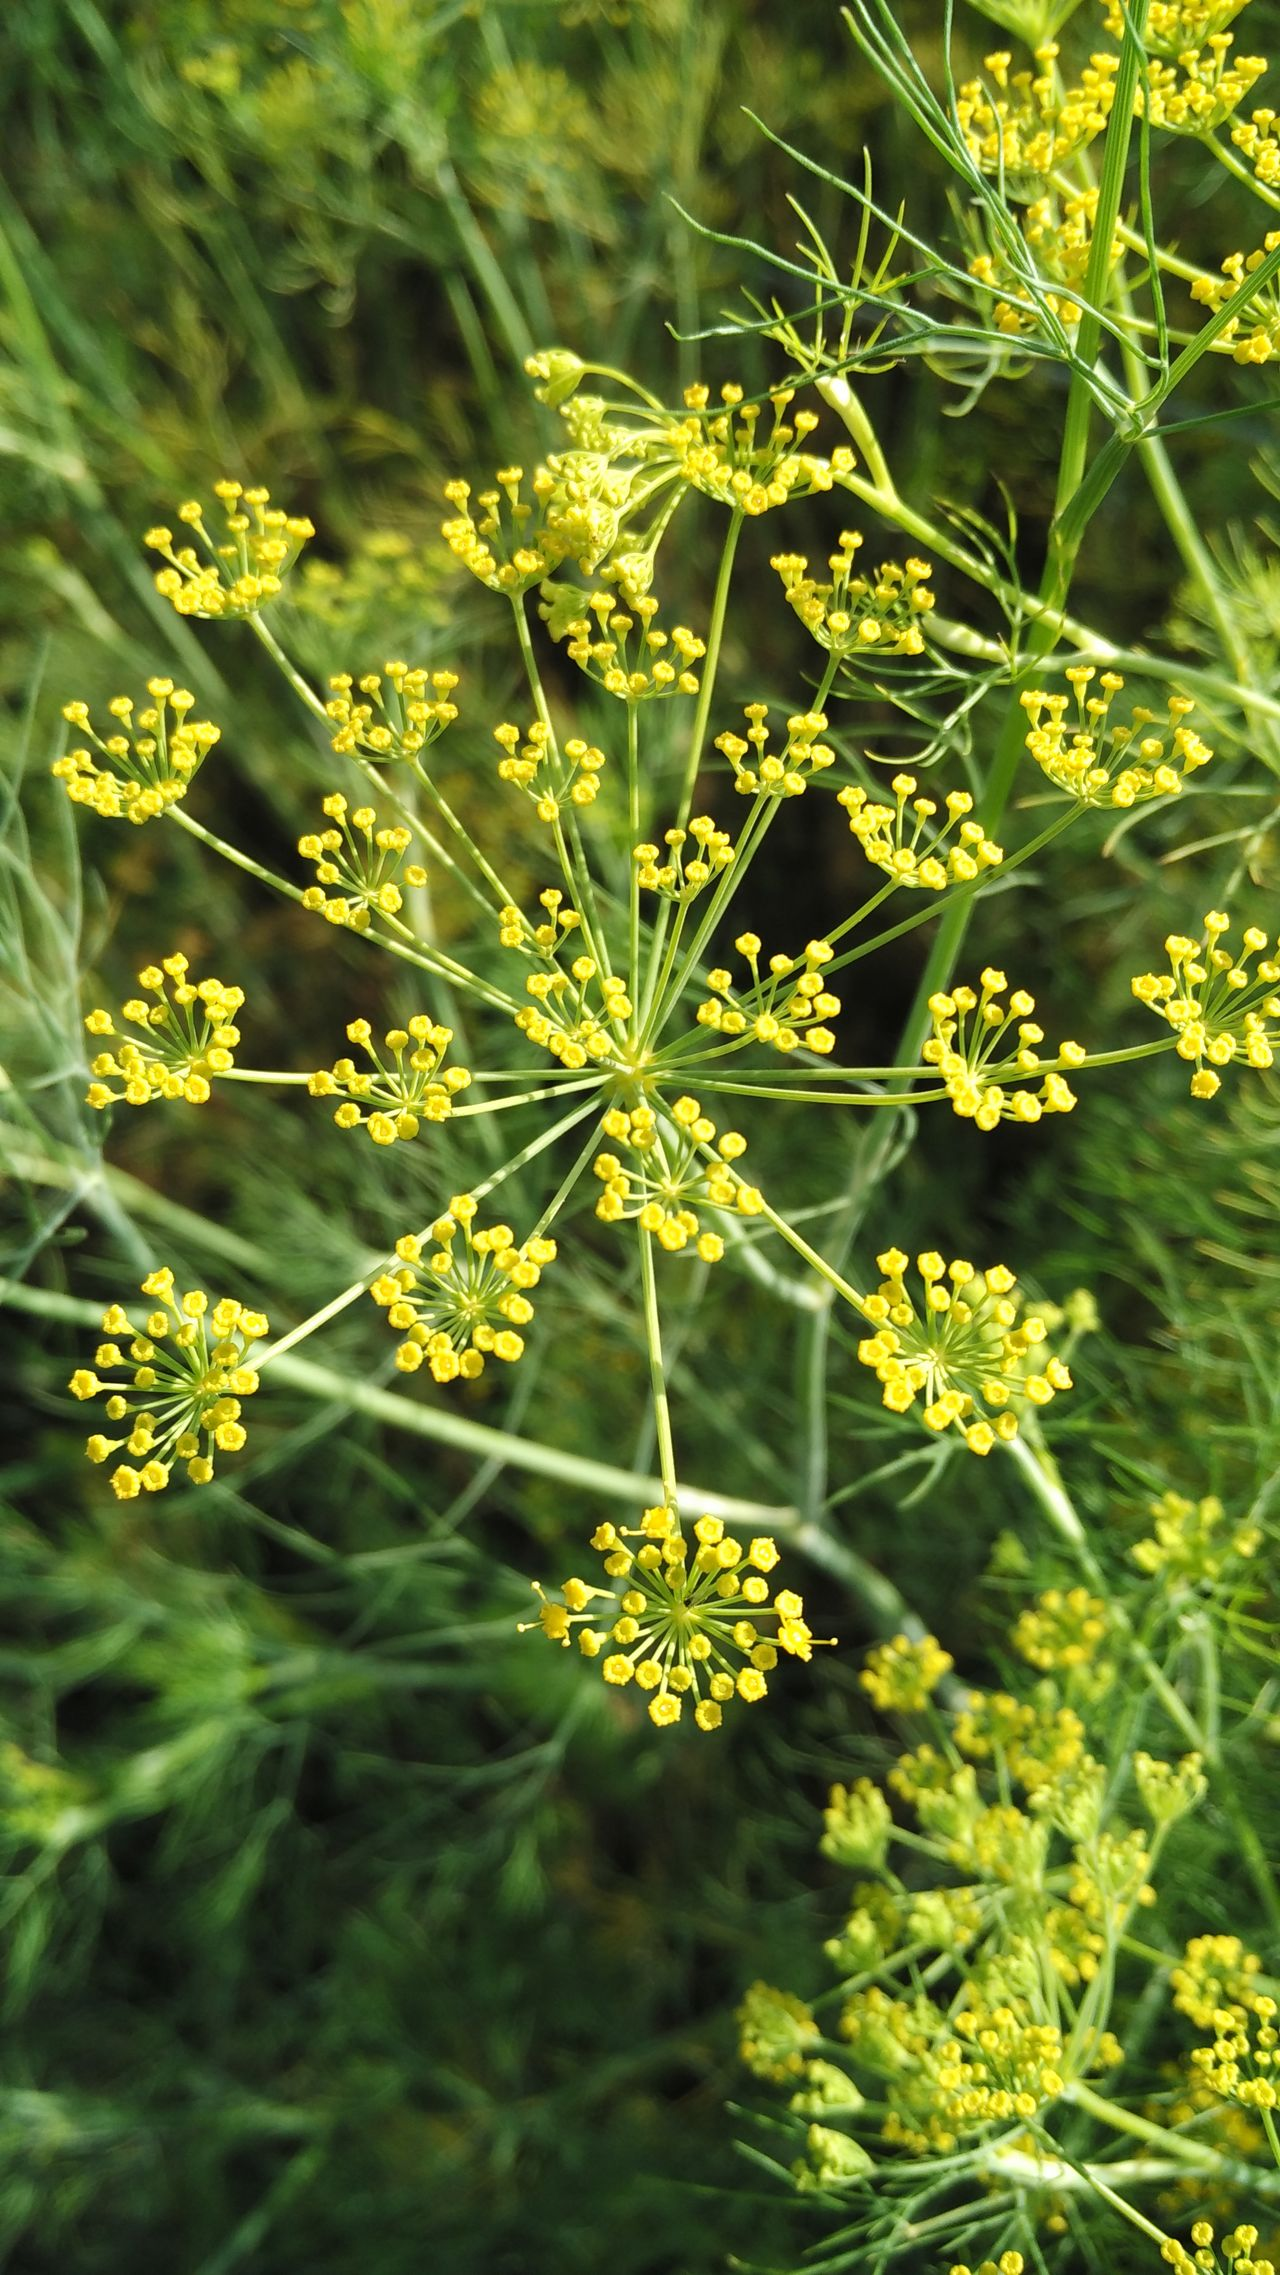 Nature Growth Green Color Sunlight Plant Beauty In Nature No People Close-up Day Mi4iphotography Mi4icamera Random Photography Mustard